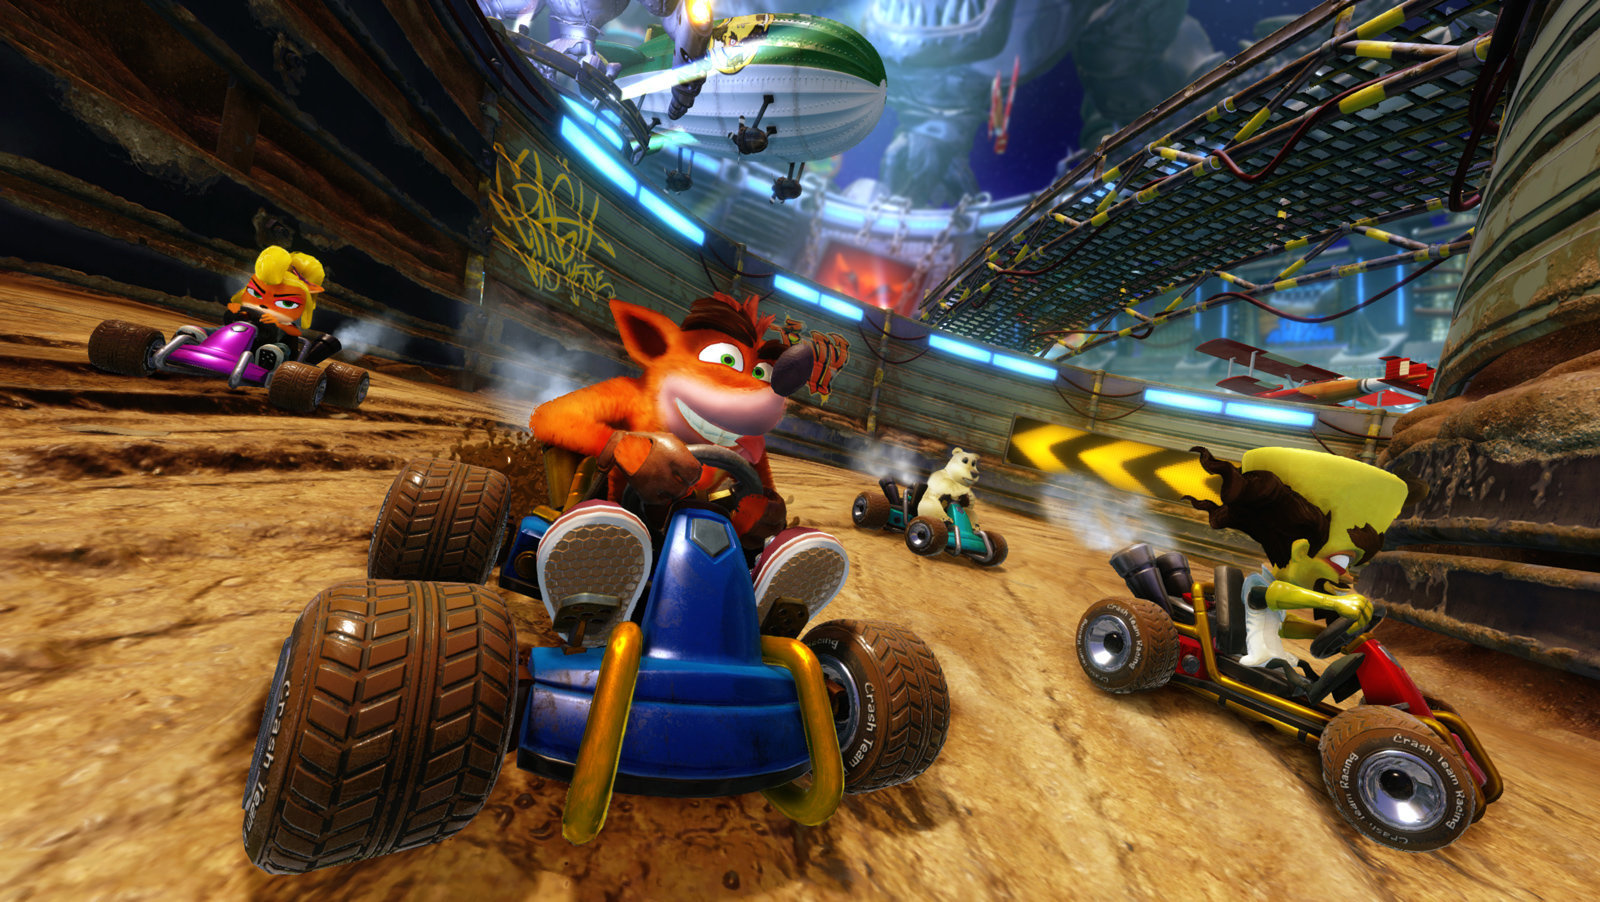 'Crash Team Racing: Nitro Fueled' Confirmed, Coming In June 2019